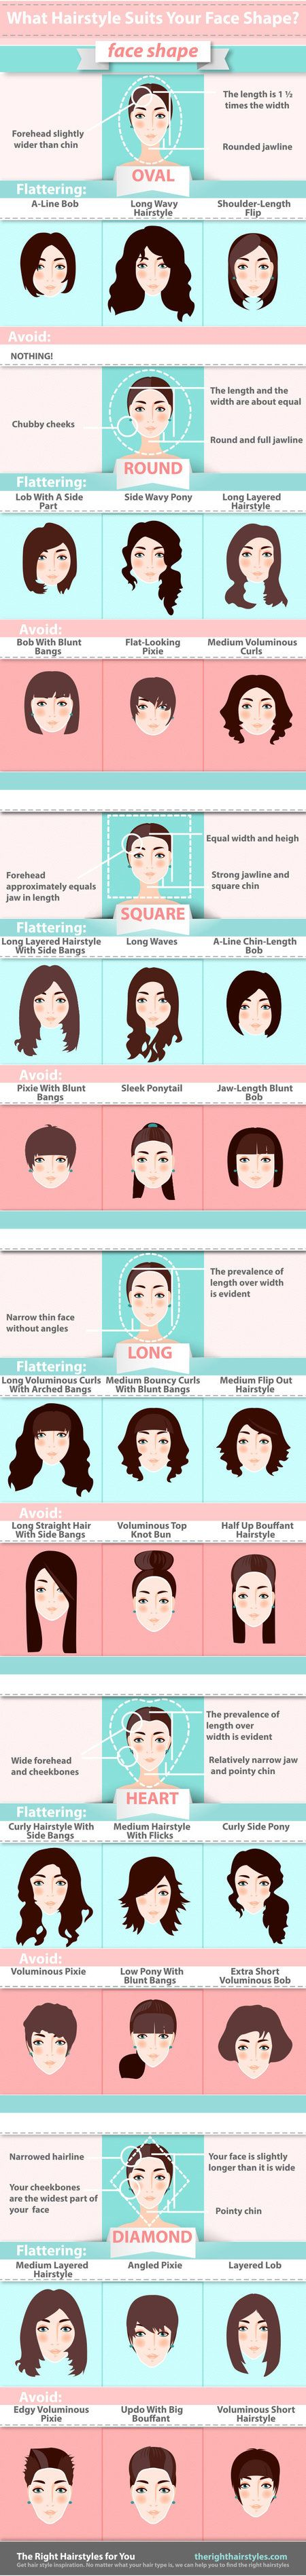 What hairstyle suits your face shape? #therighthairstyles #beautytips